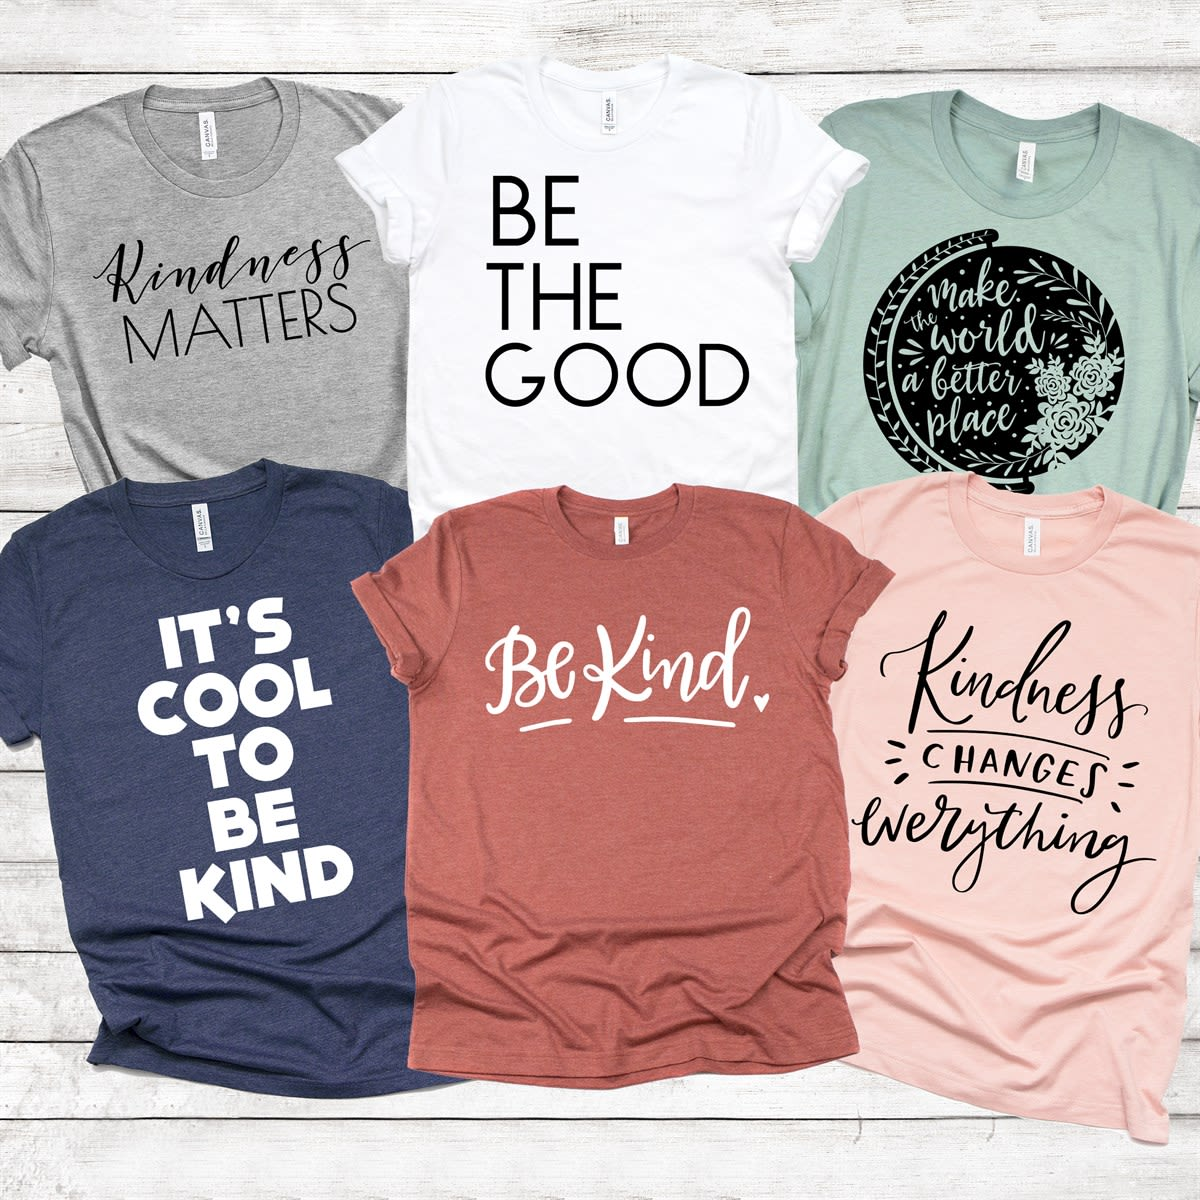 Make a Difference Tees